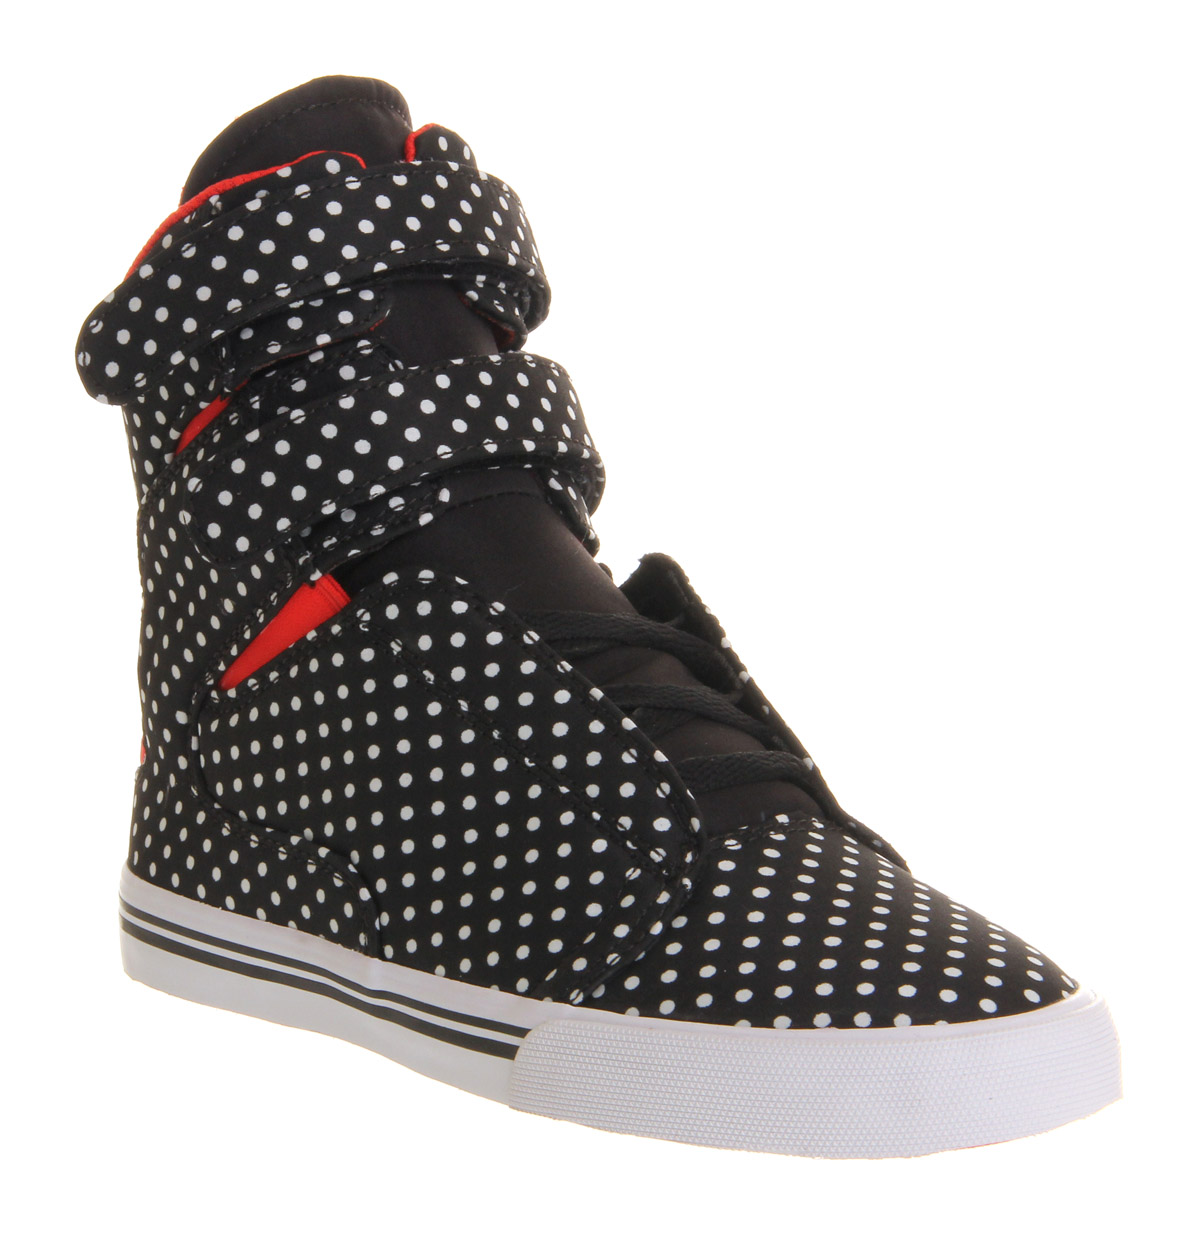 tk supra high tops